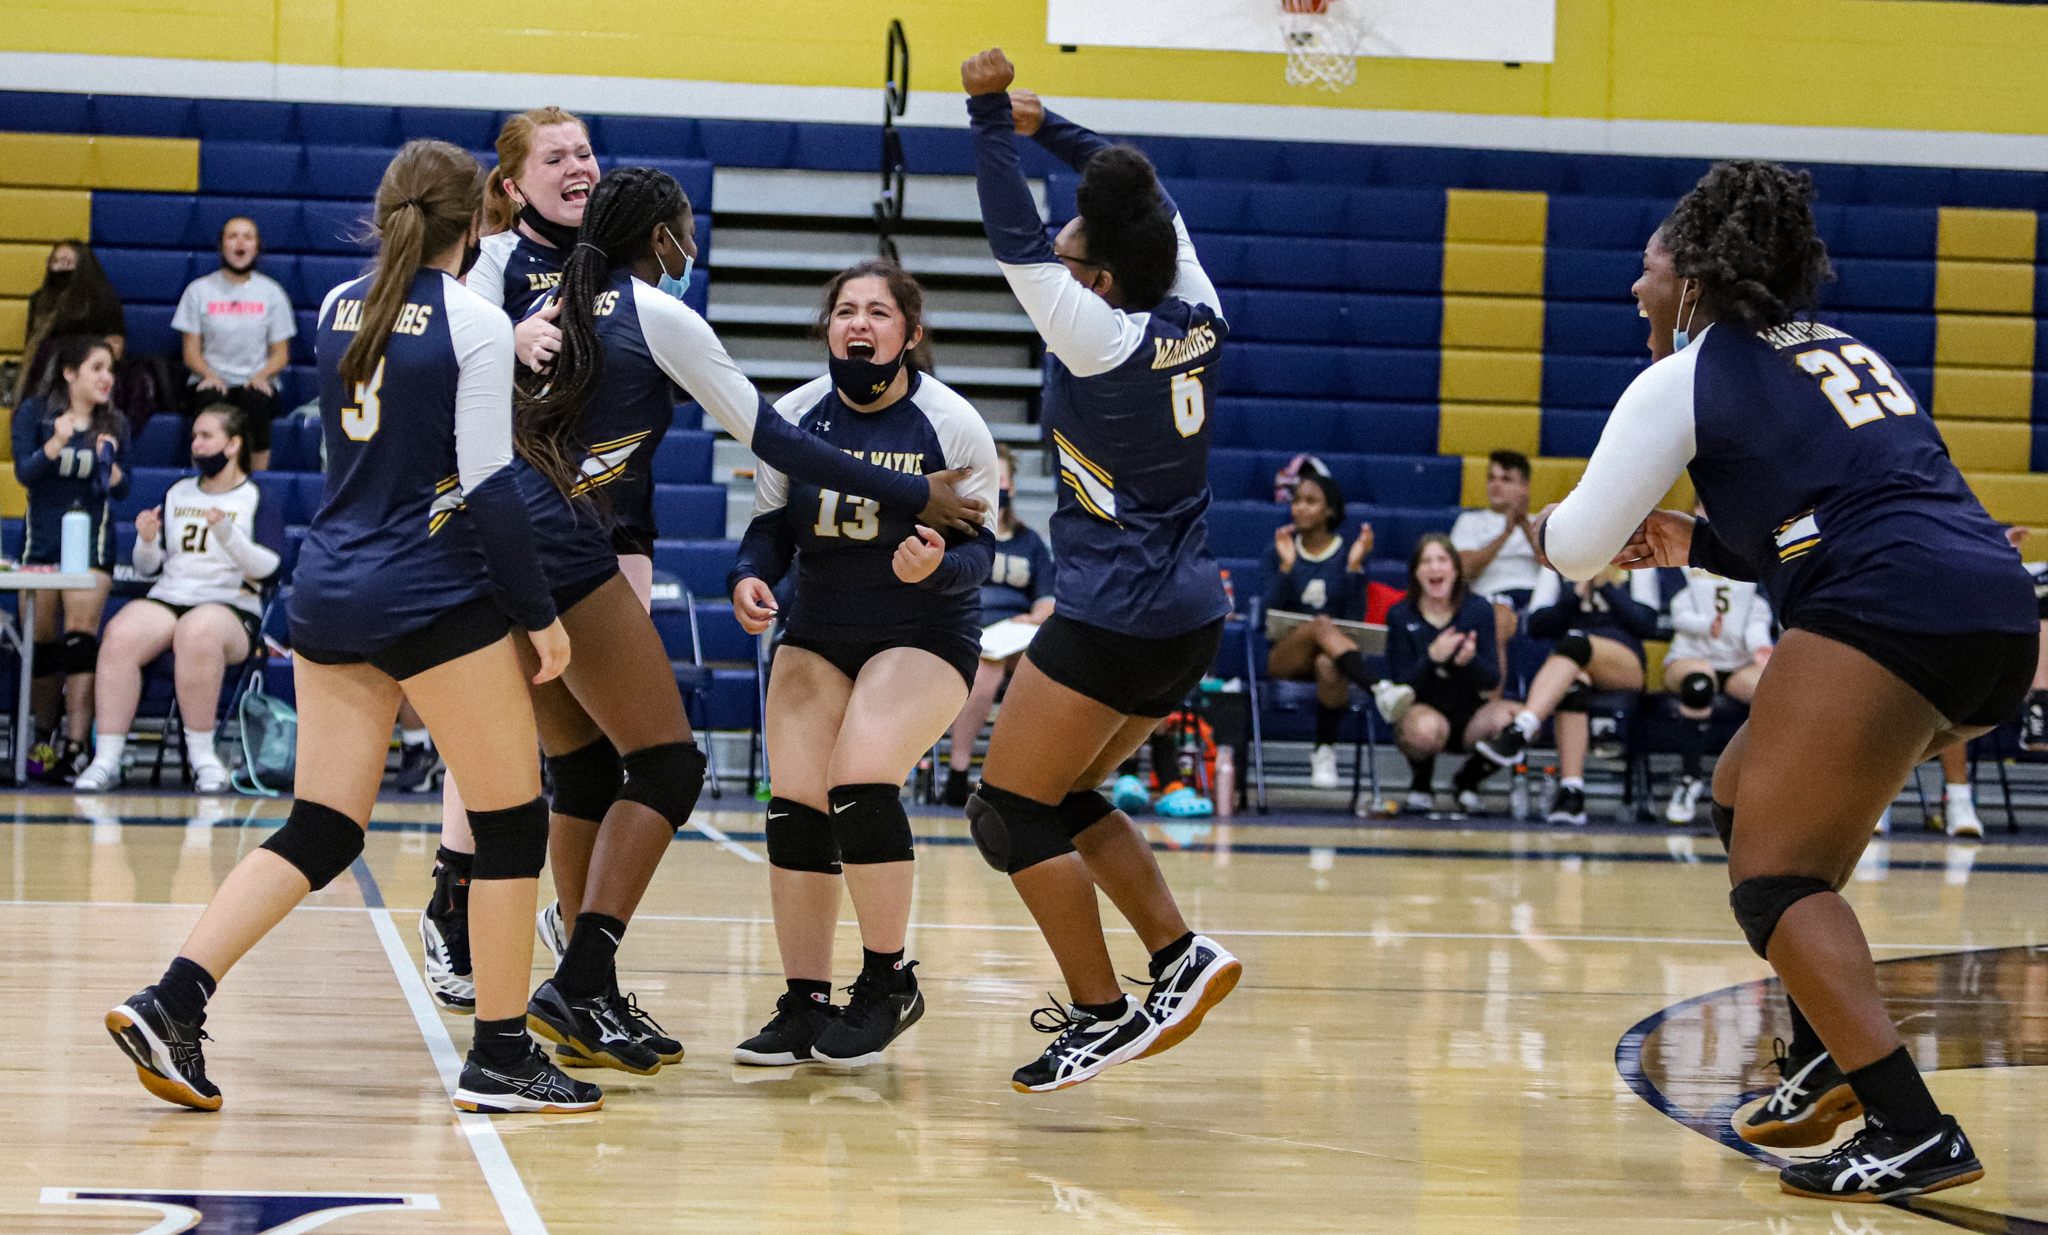 Volleyball: Eastern Wayne Gets Its First Win Of The Season Against Kinston (PHOTO GALLERY)